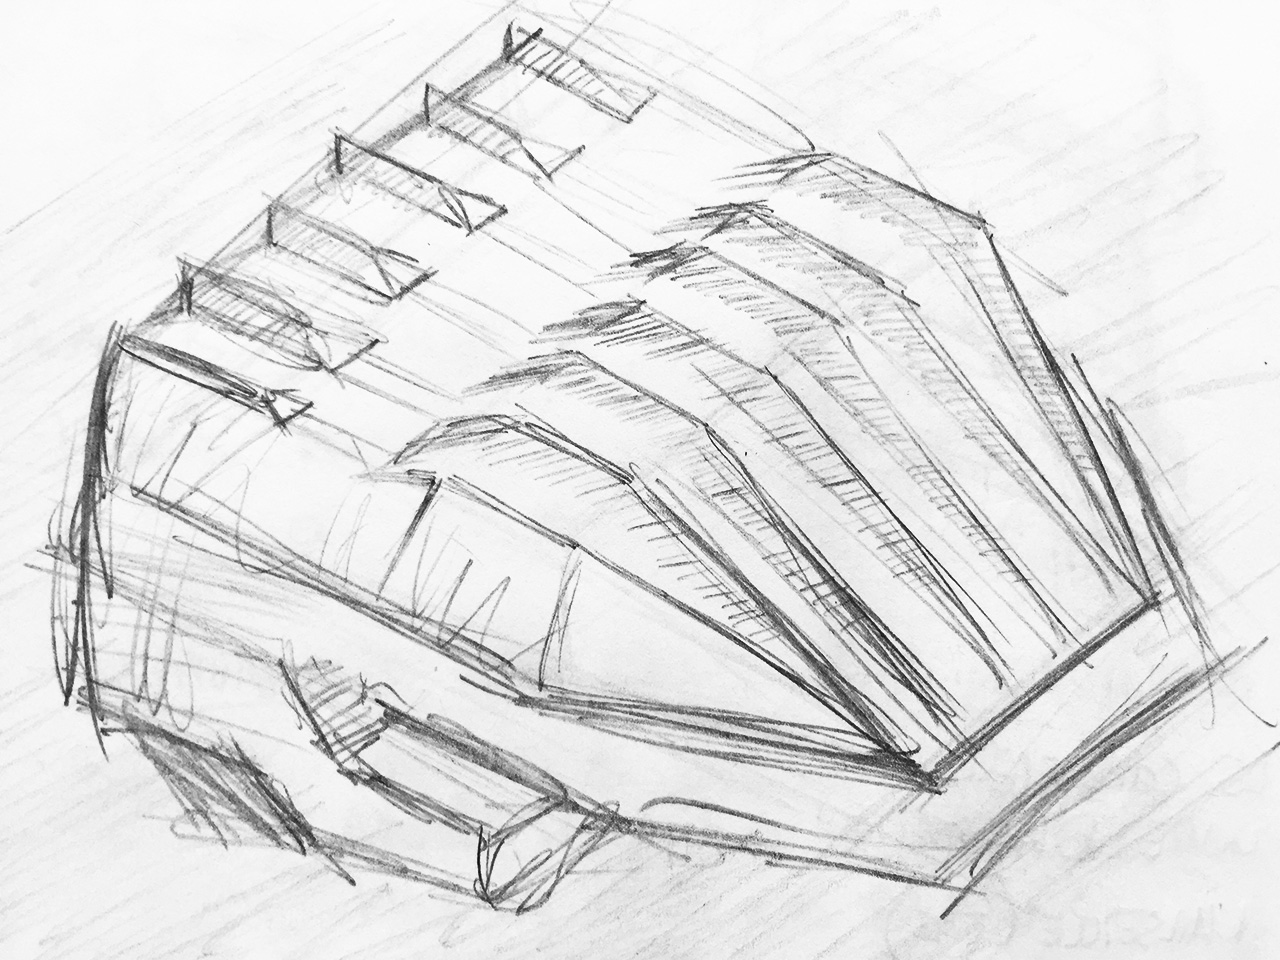 Sketch - Aula of the Technical University in Delft